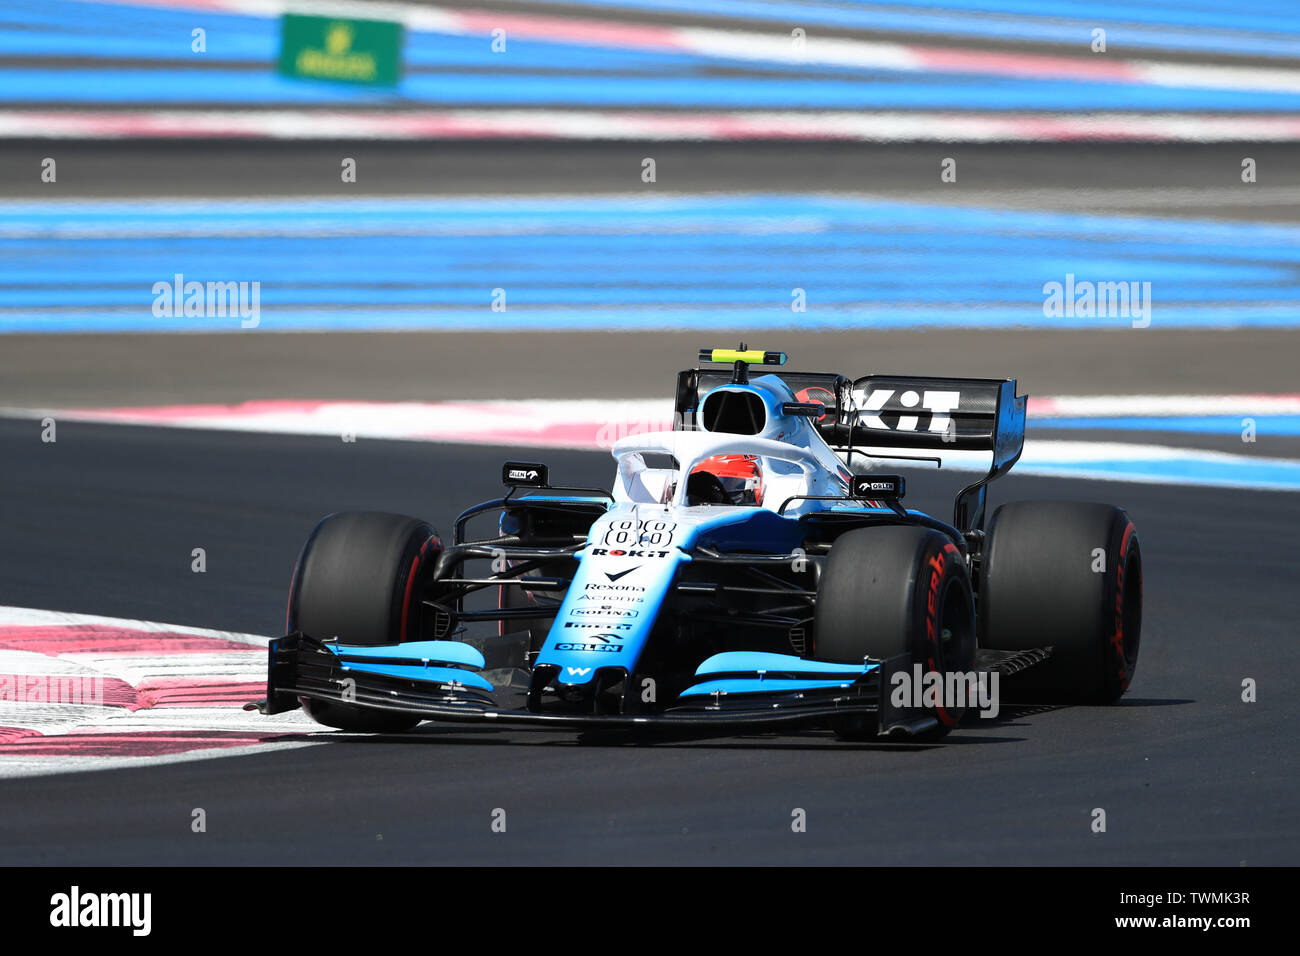 Marseille, France. 21st Jun 2019. FIA Formula 1 Grand Prix of France, practice sessions; ROKiT Williams Racing, Robert Kubica Credit: Action Plus Sports Images/Alamy Live News Stock Photo